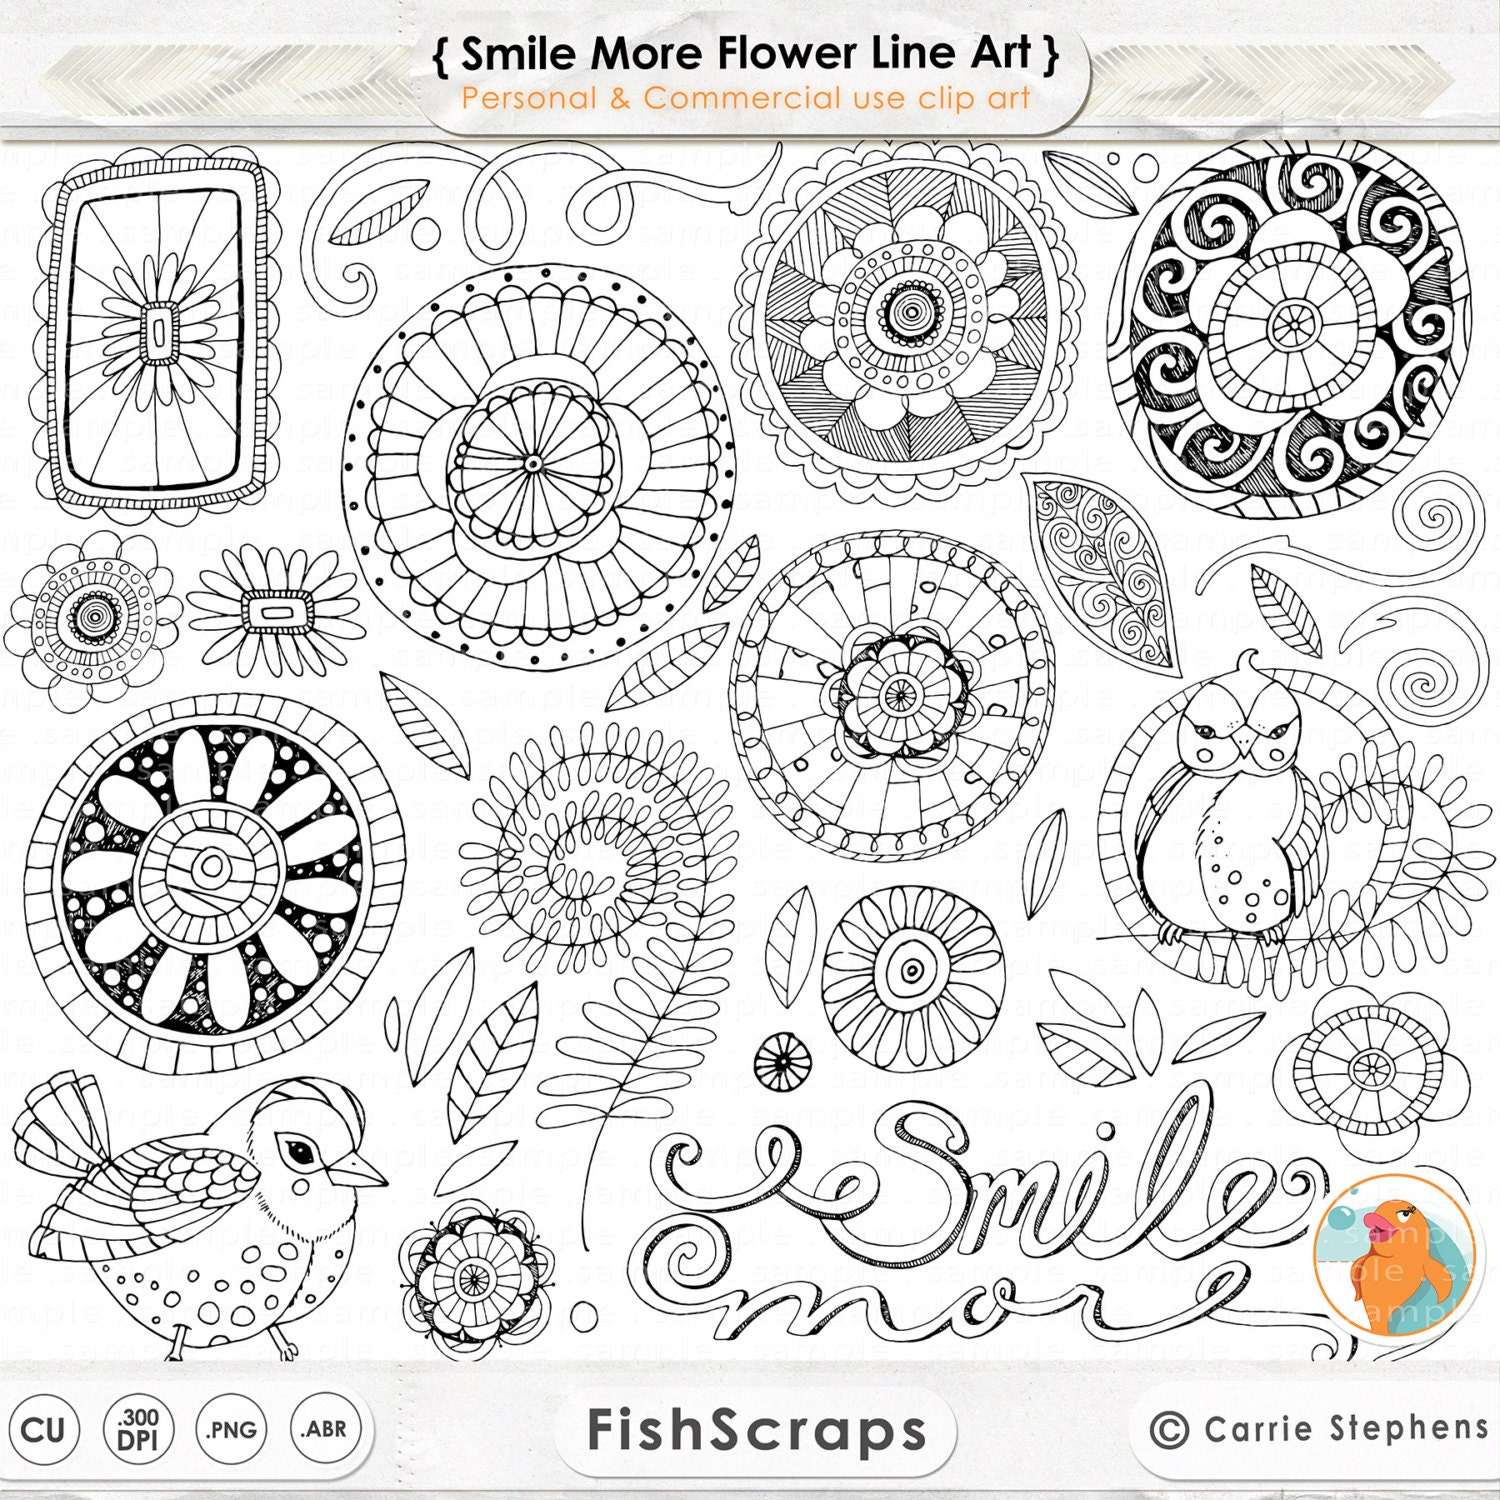 Doodle Flowers ClipArt Boho Digital Flower Line Art Flower